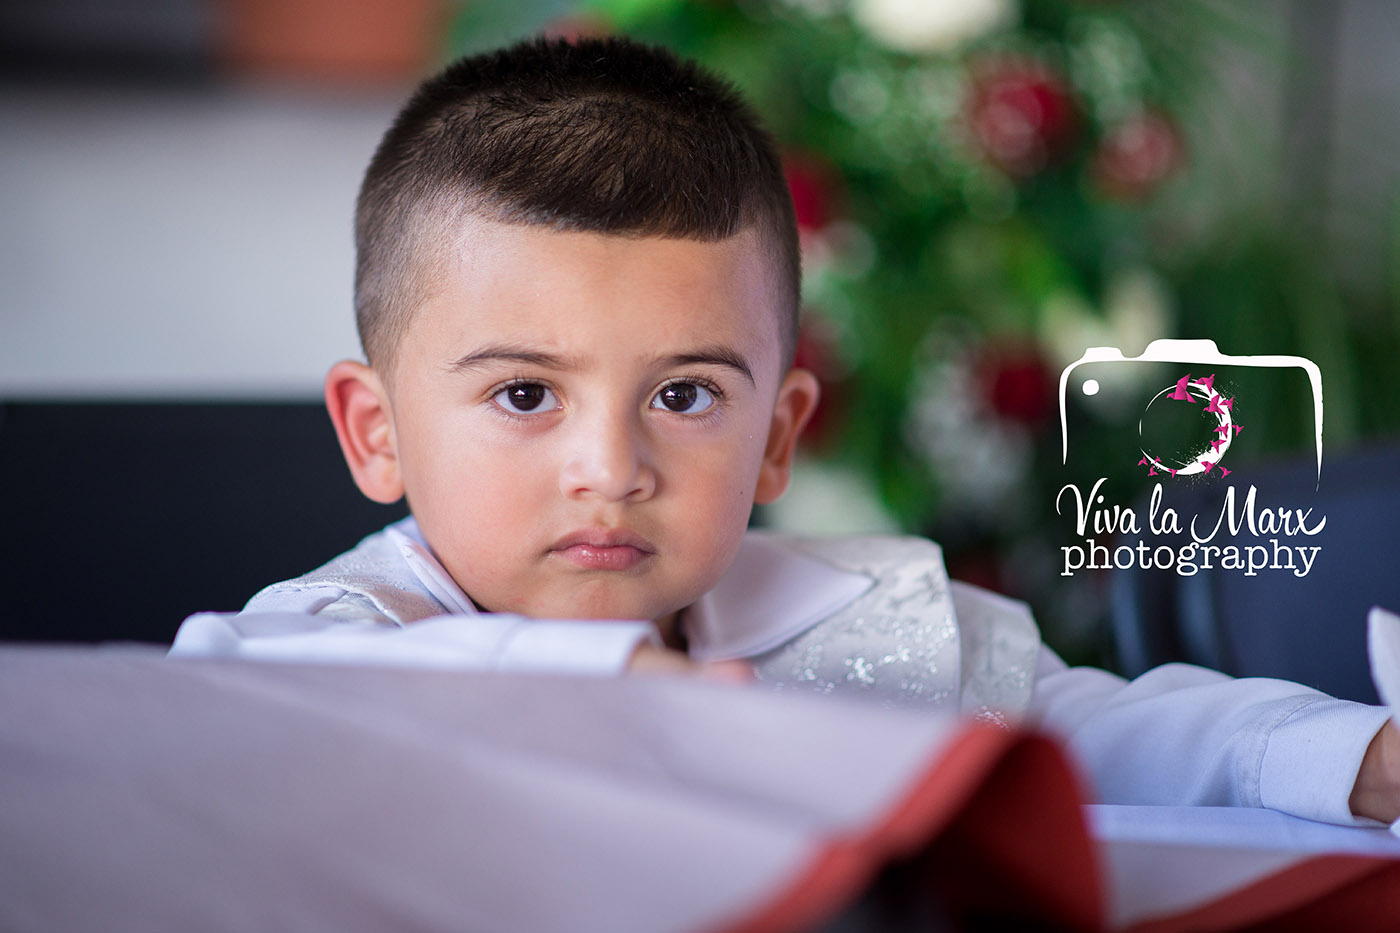 Armando, also witnessing his parents get married. He got to be baptized that same day, as well.